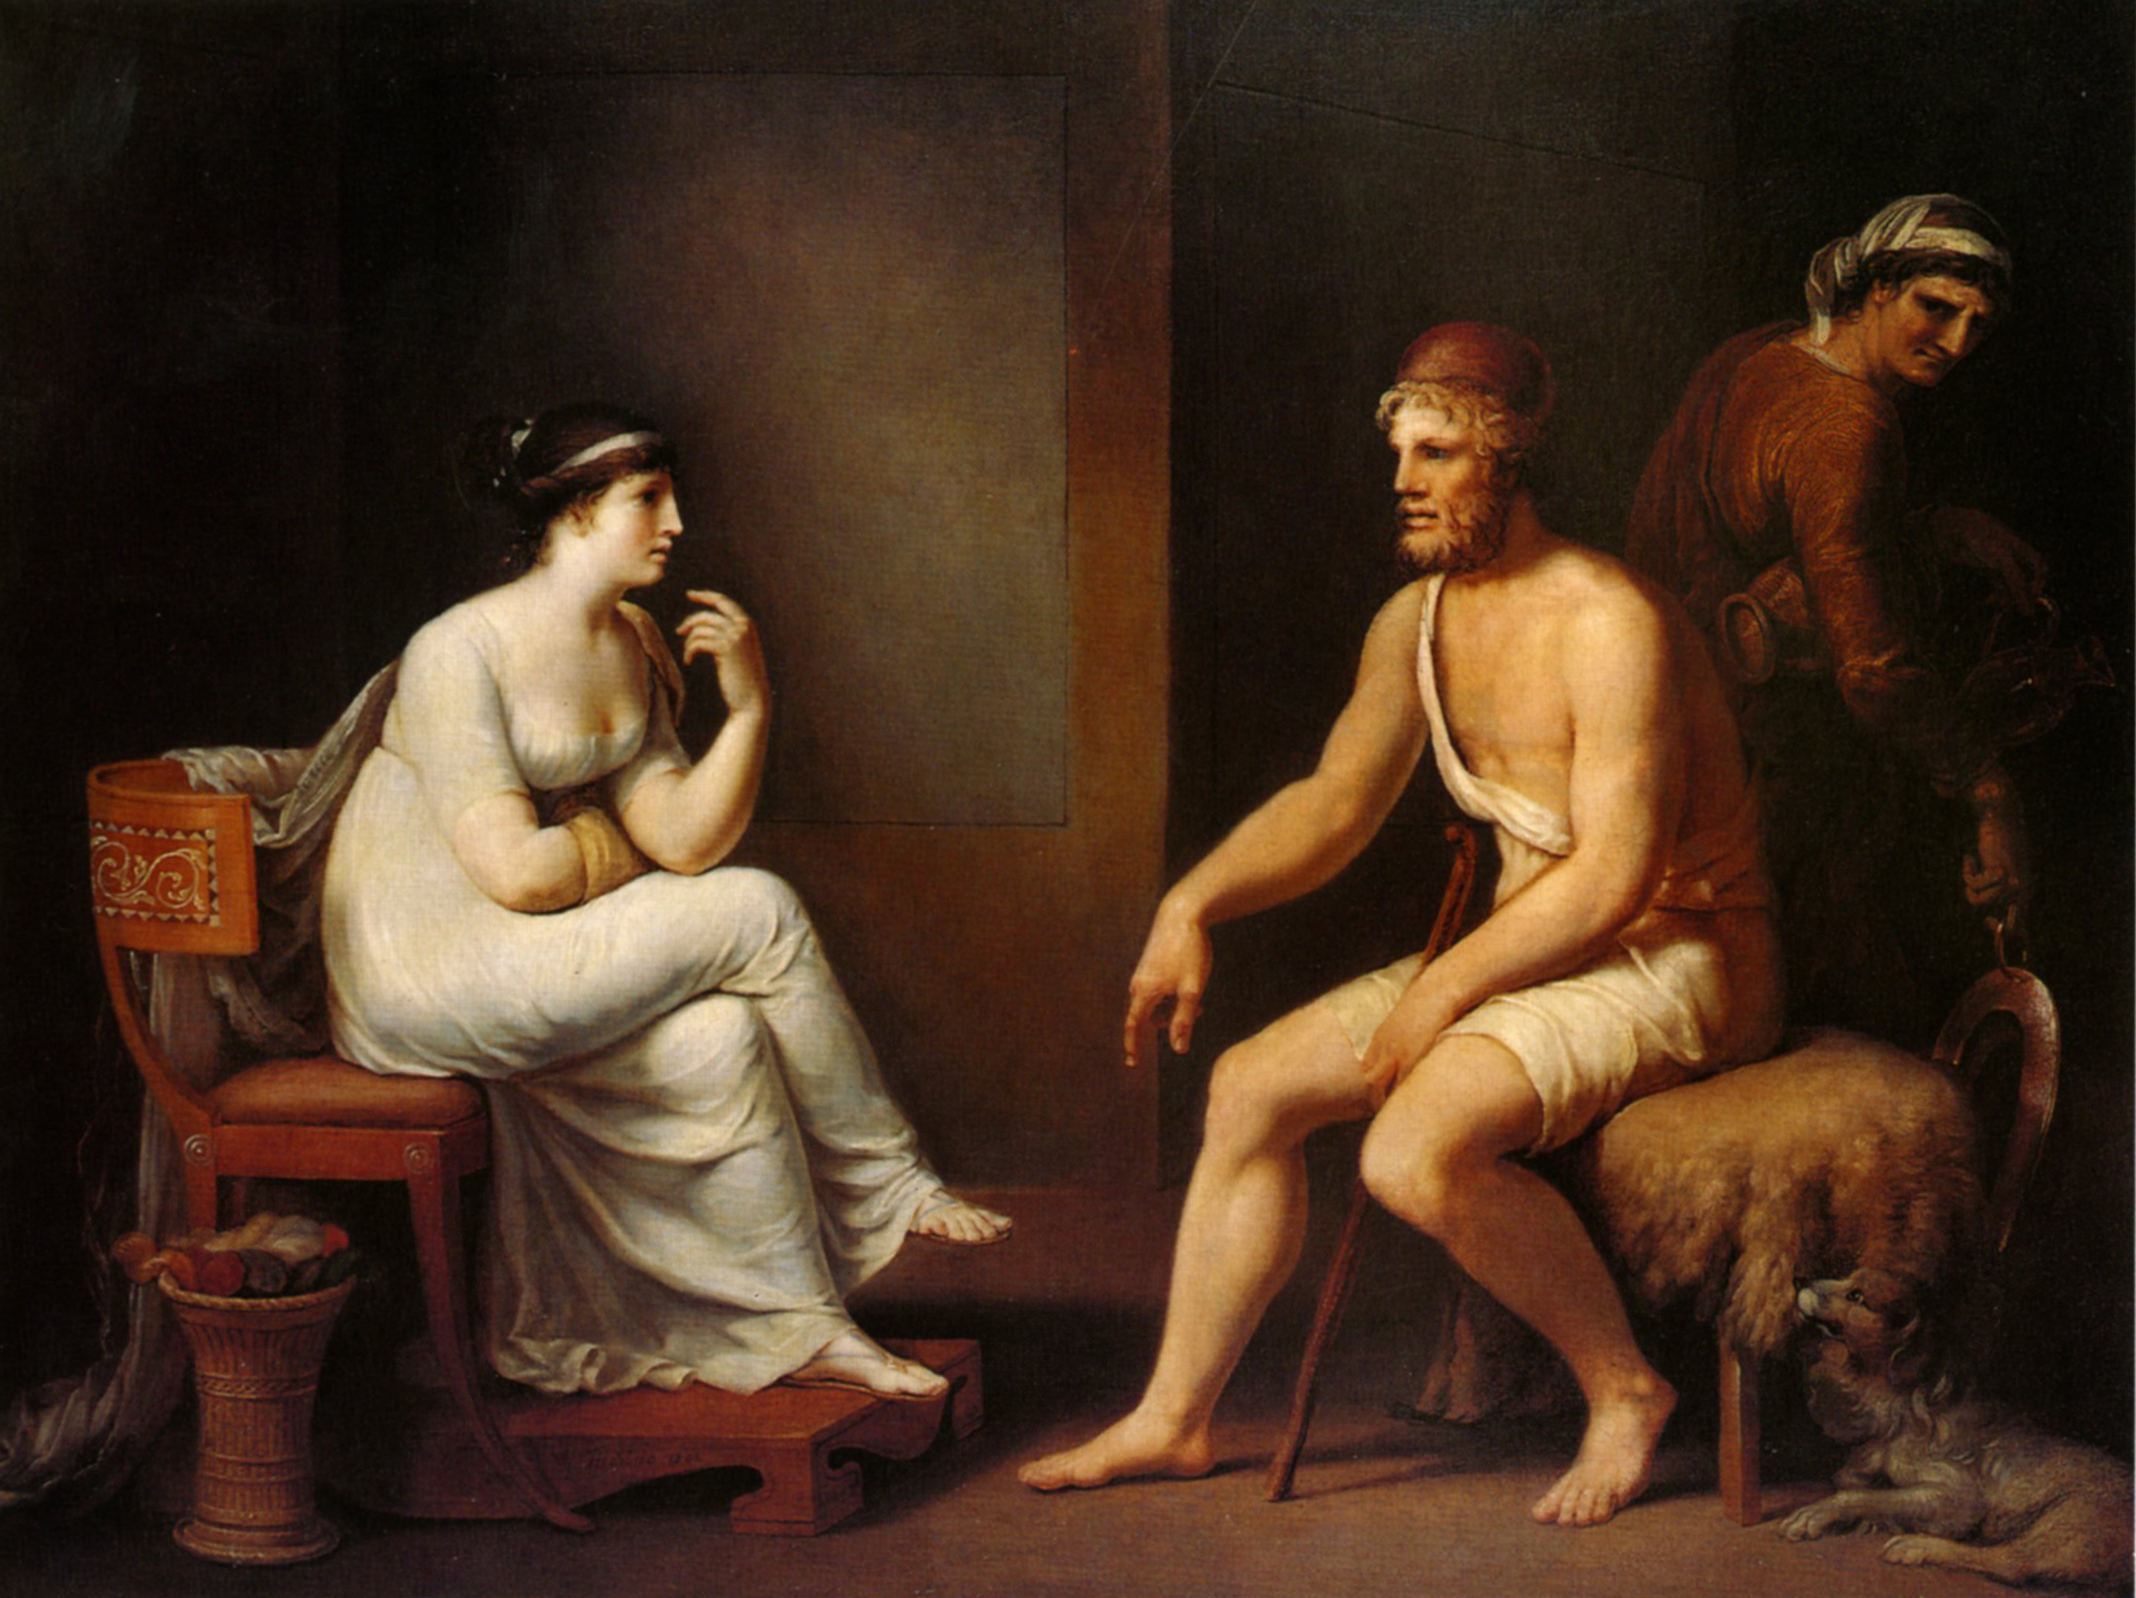 comparison of odysseus and helen as As the suitors are odysseus's mortal antagonists, poseidon is his divine antagonist he despises odysseus for blinding his son, the cyclops polyphemus, and constantly hampers his journey home ironically, poseidon is the patron of the seafaring phaeacians, who ultimately help to return odysseus to ithaca.